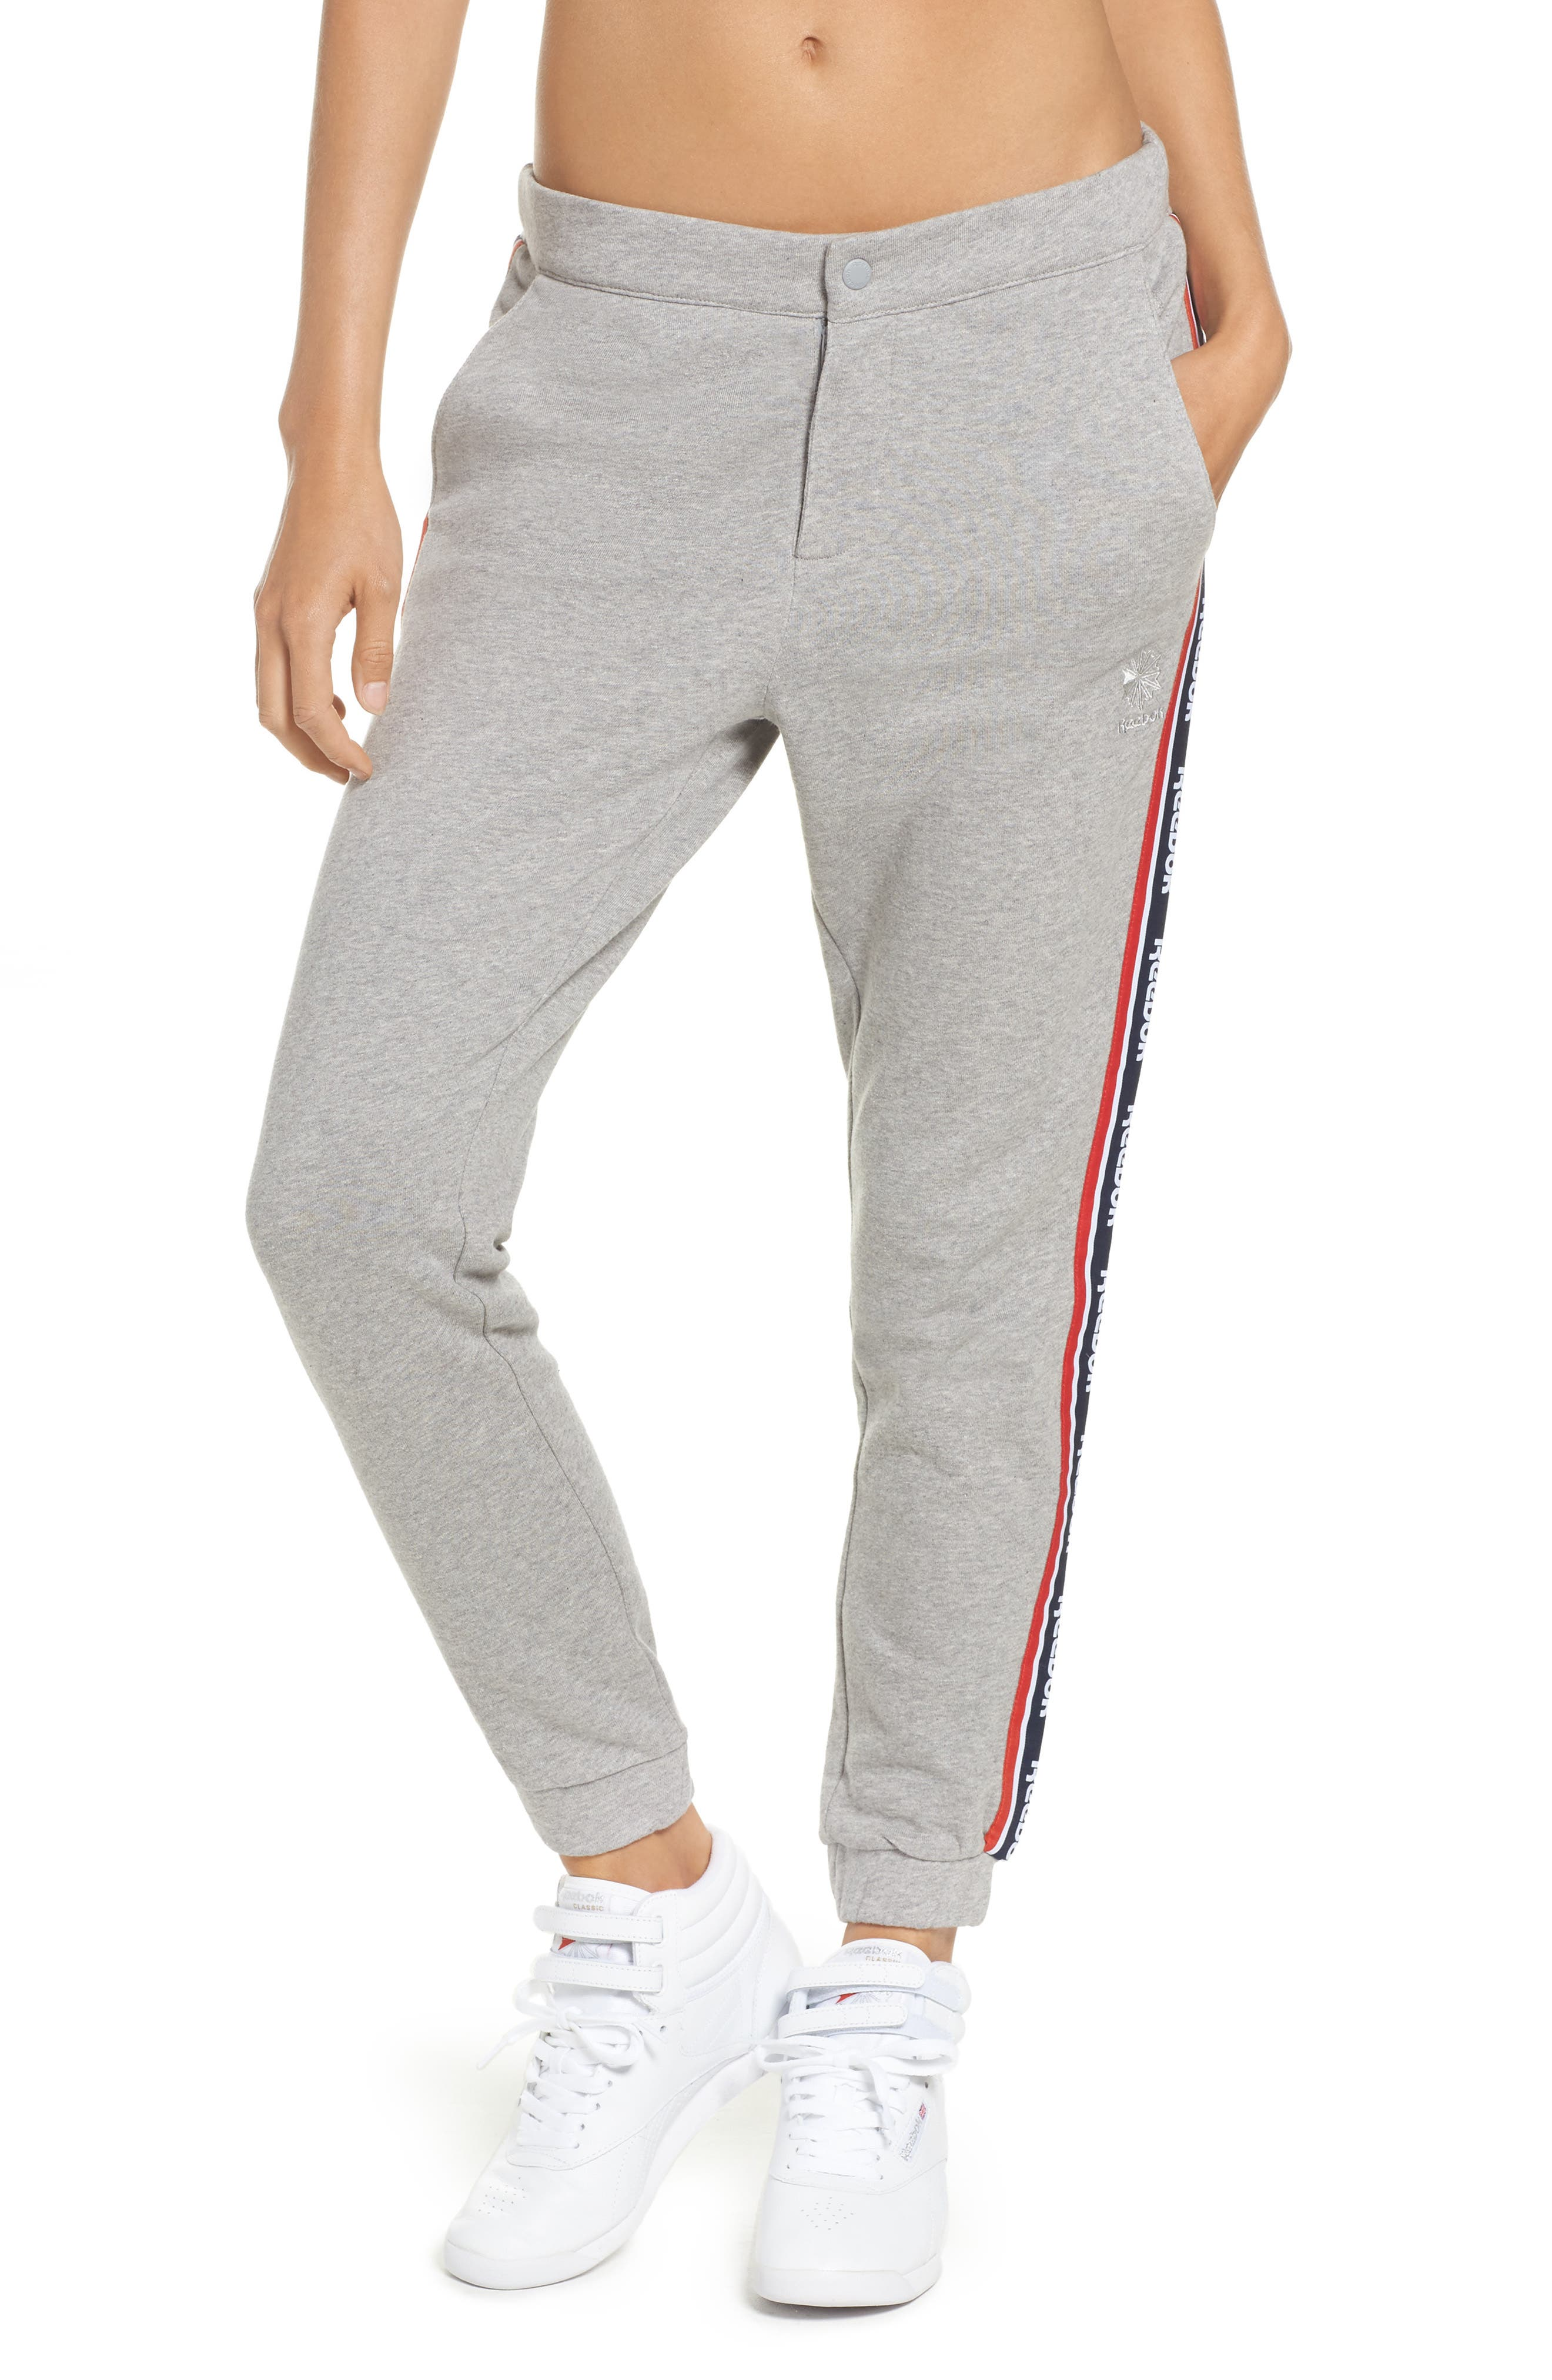 French Terry Pants,                             Main thumbnail 1, color,